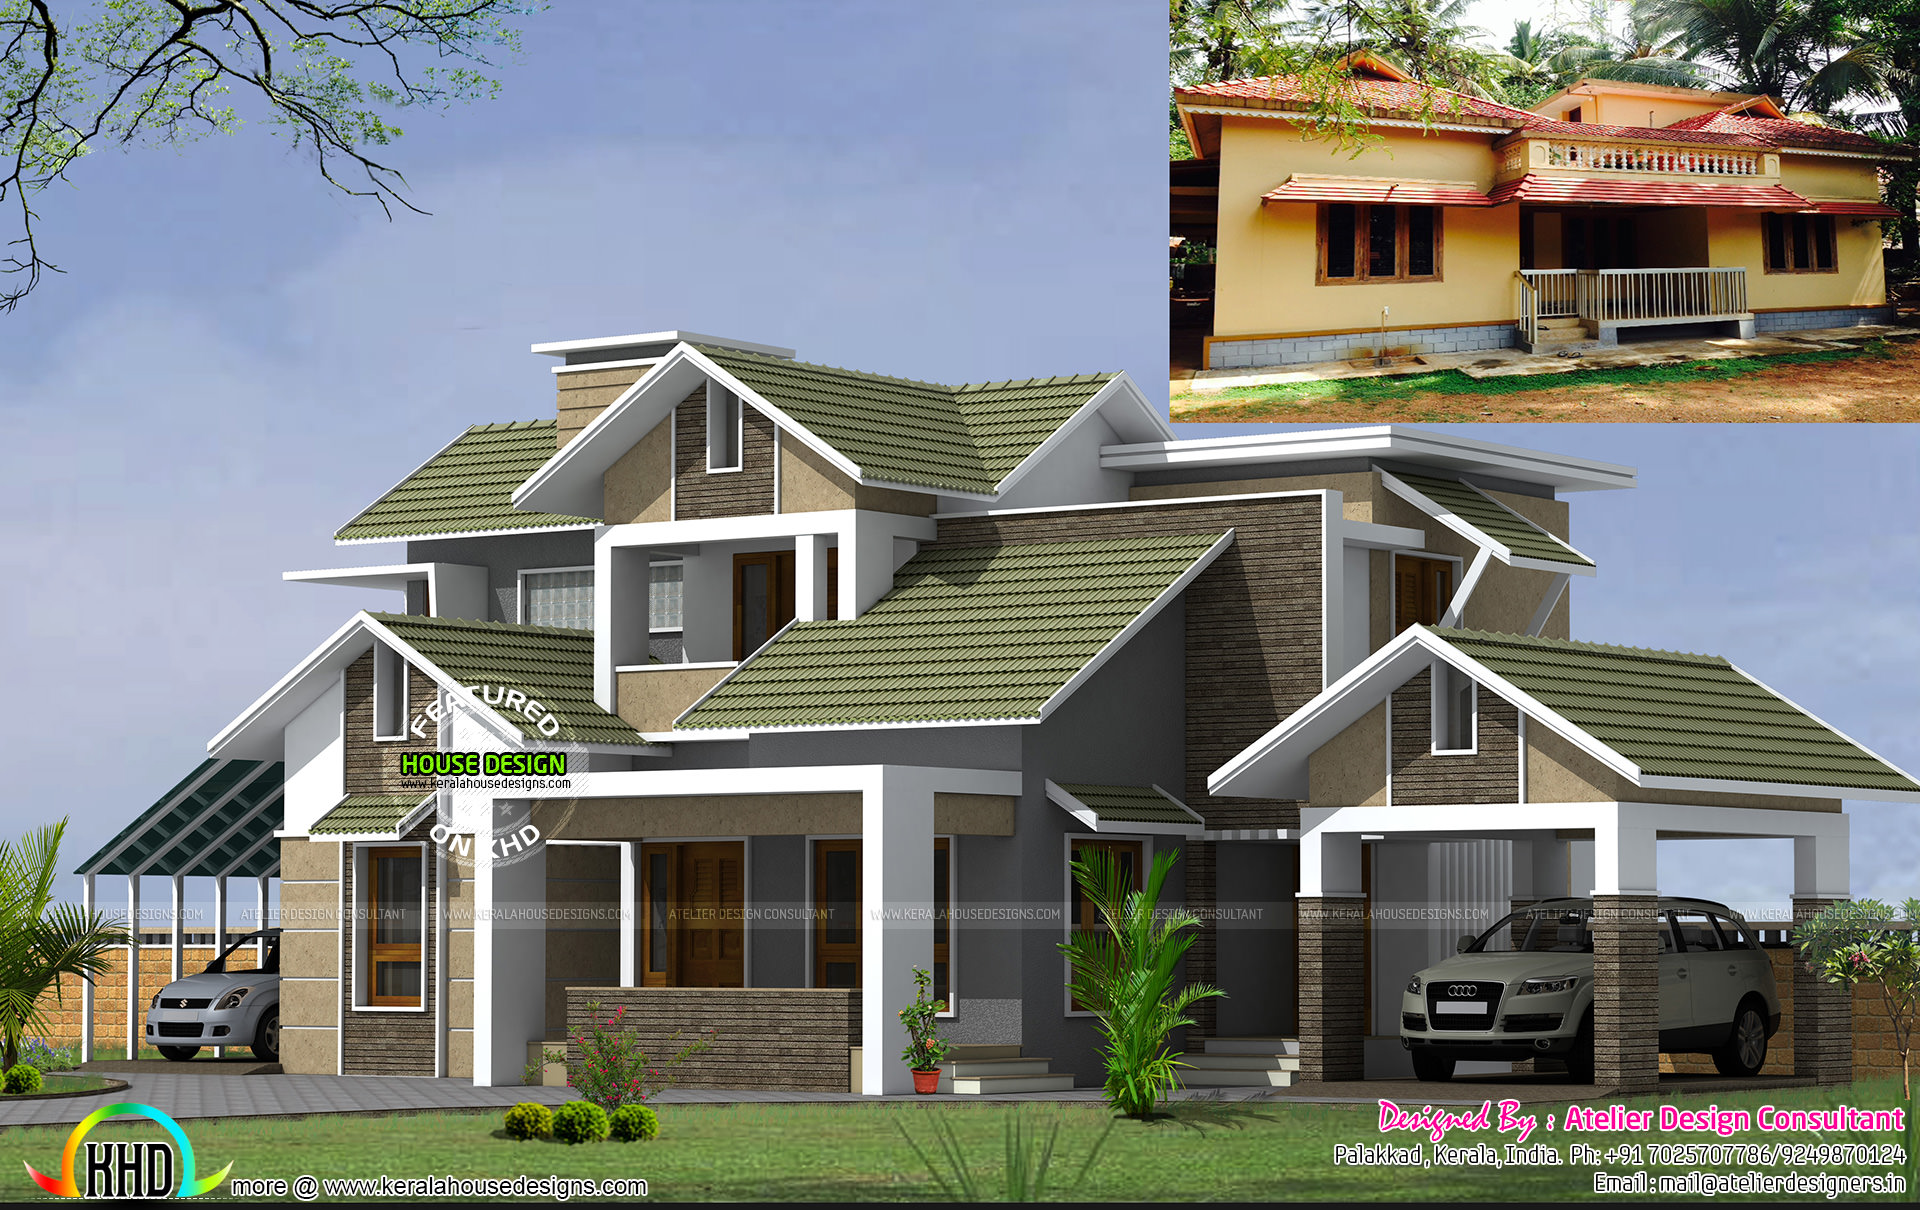 22 years old home turned to modern style home kerala for New houses that look old plans